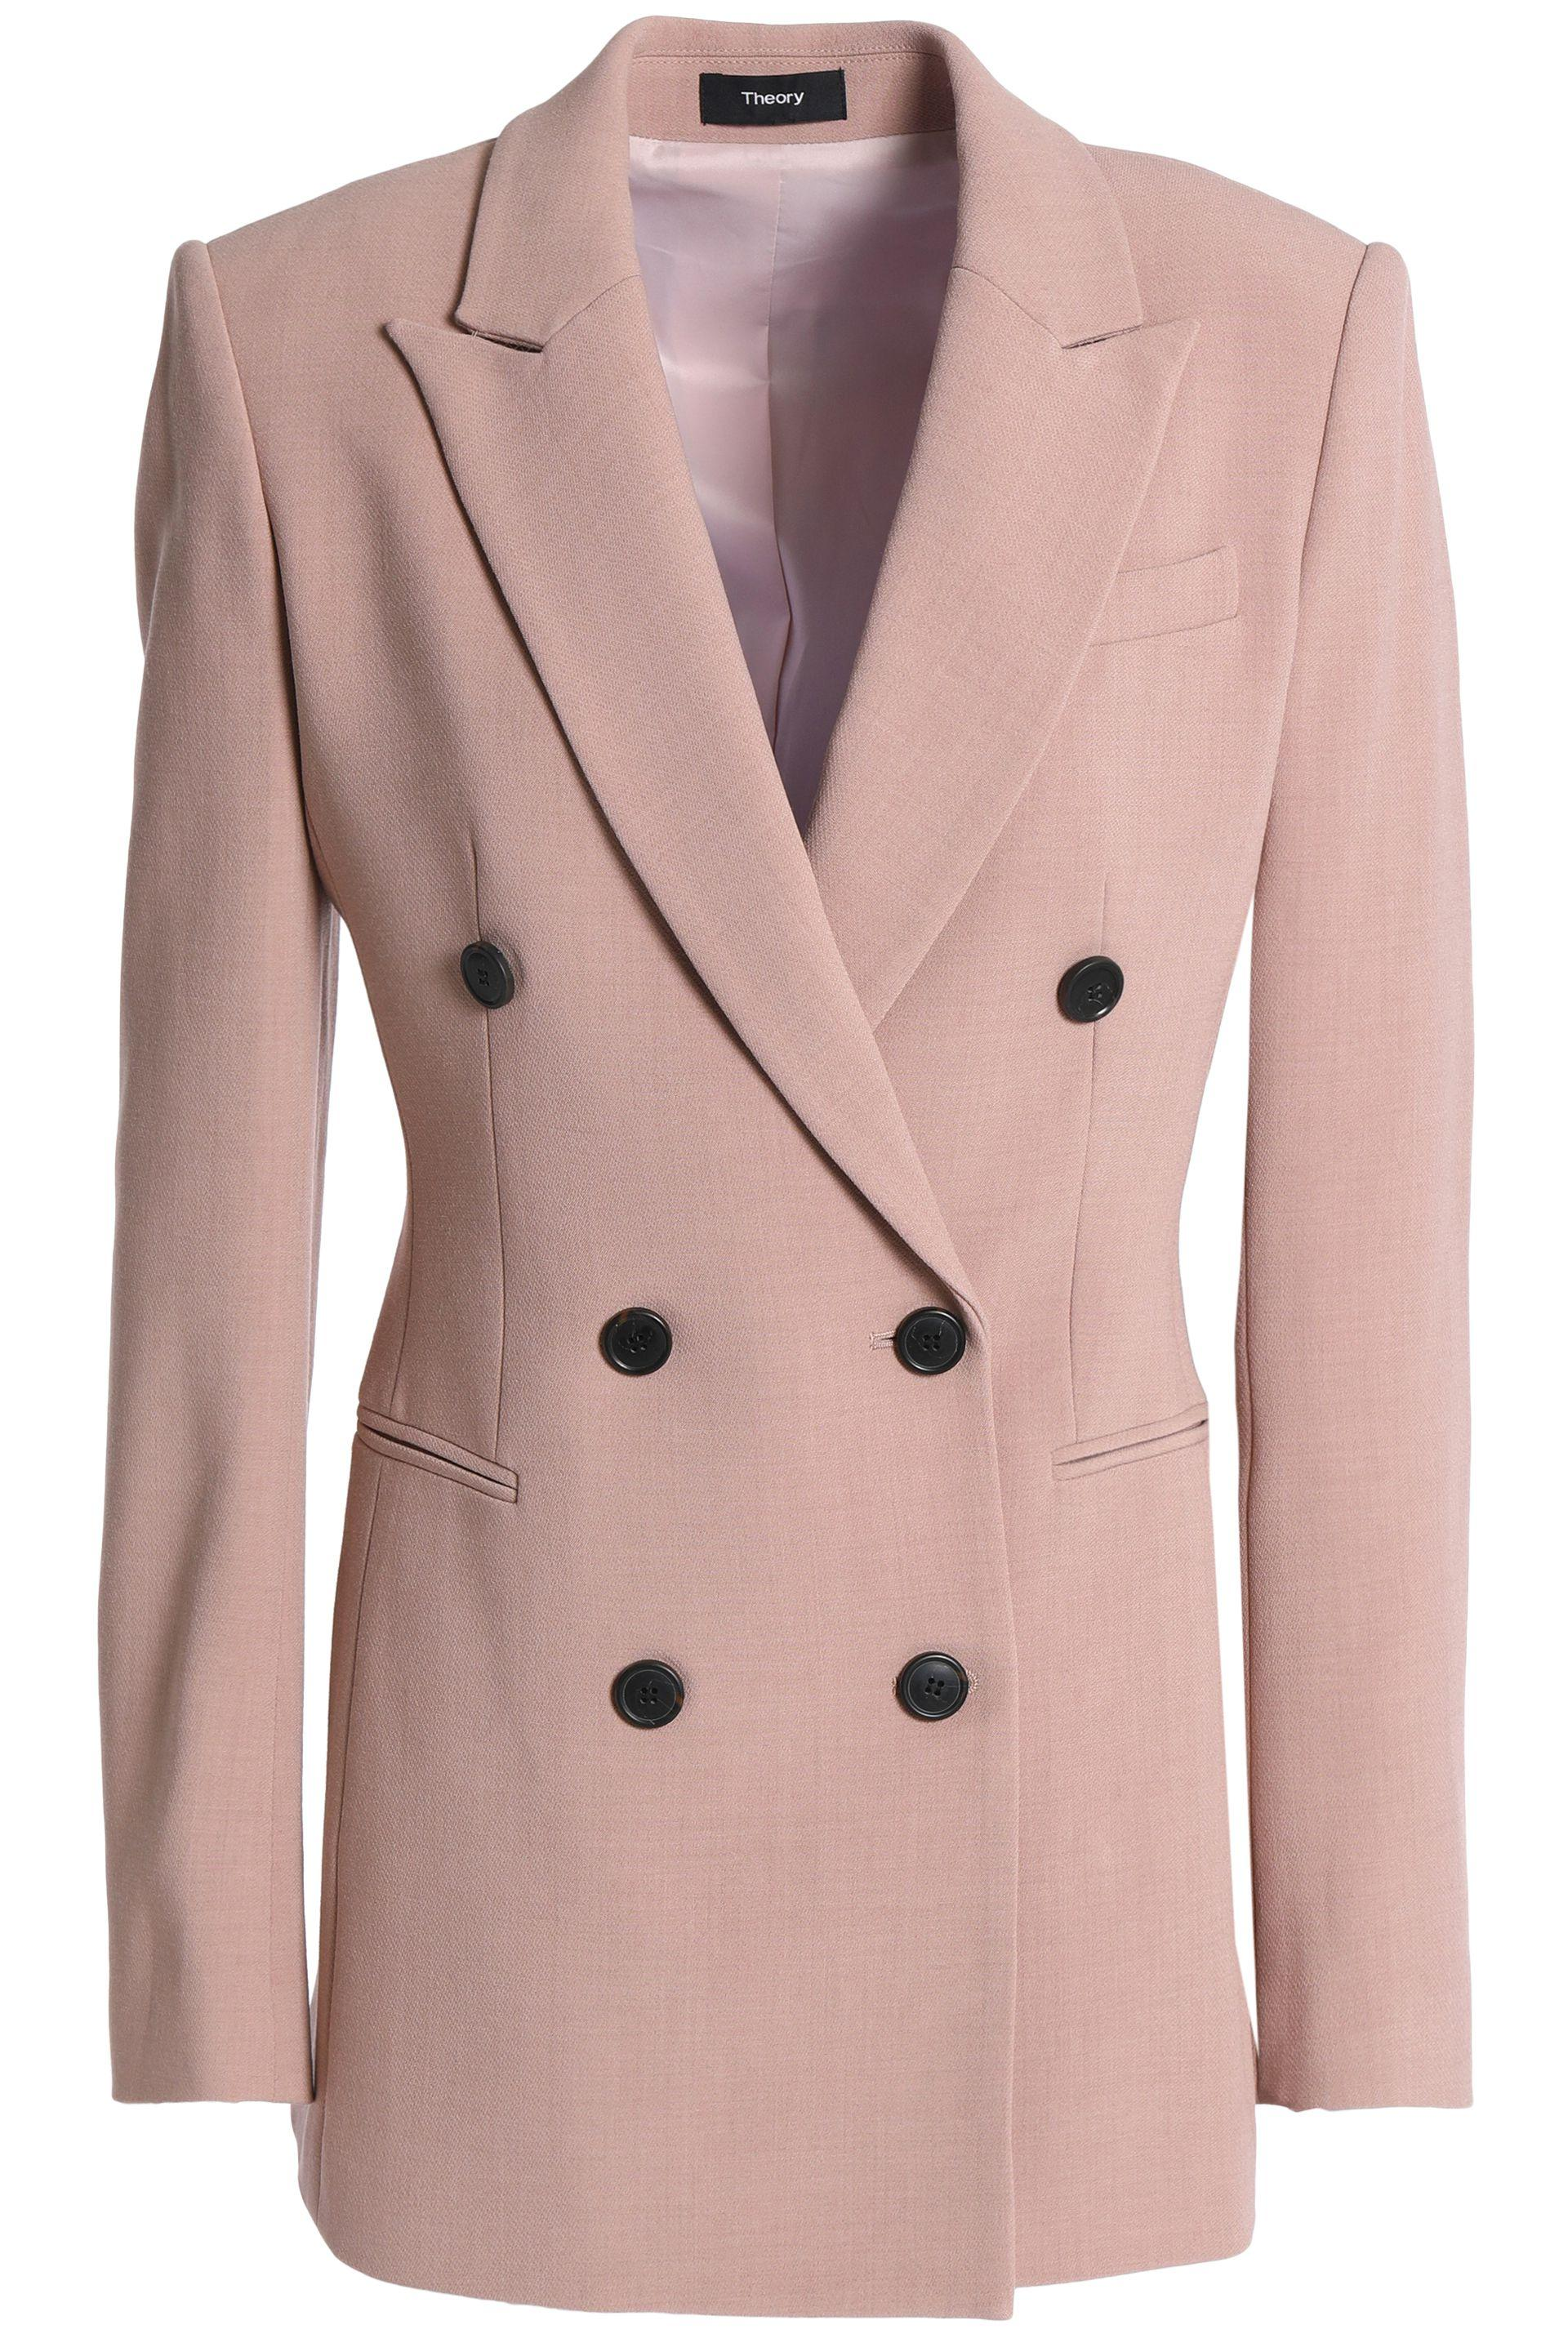 10b6b5e295 Theory Woman Double-breasted Crepe Blazer Baby Pink in Pink - Lyst